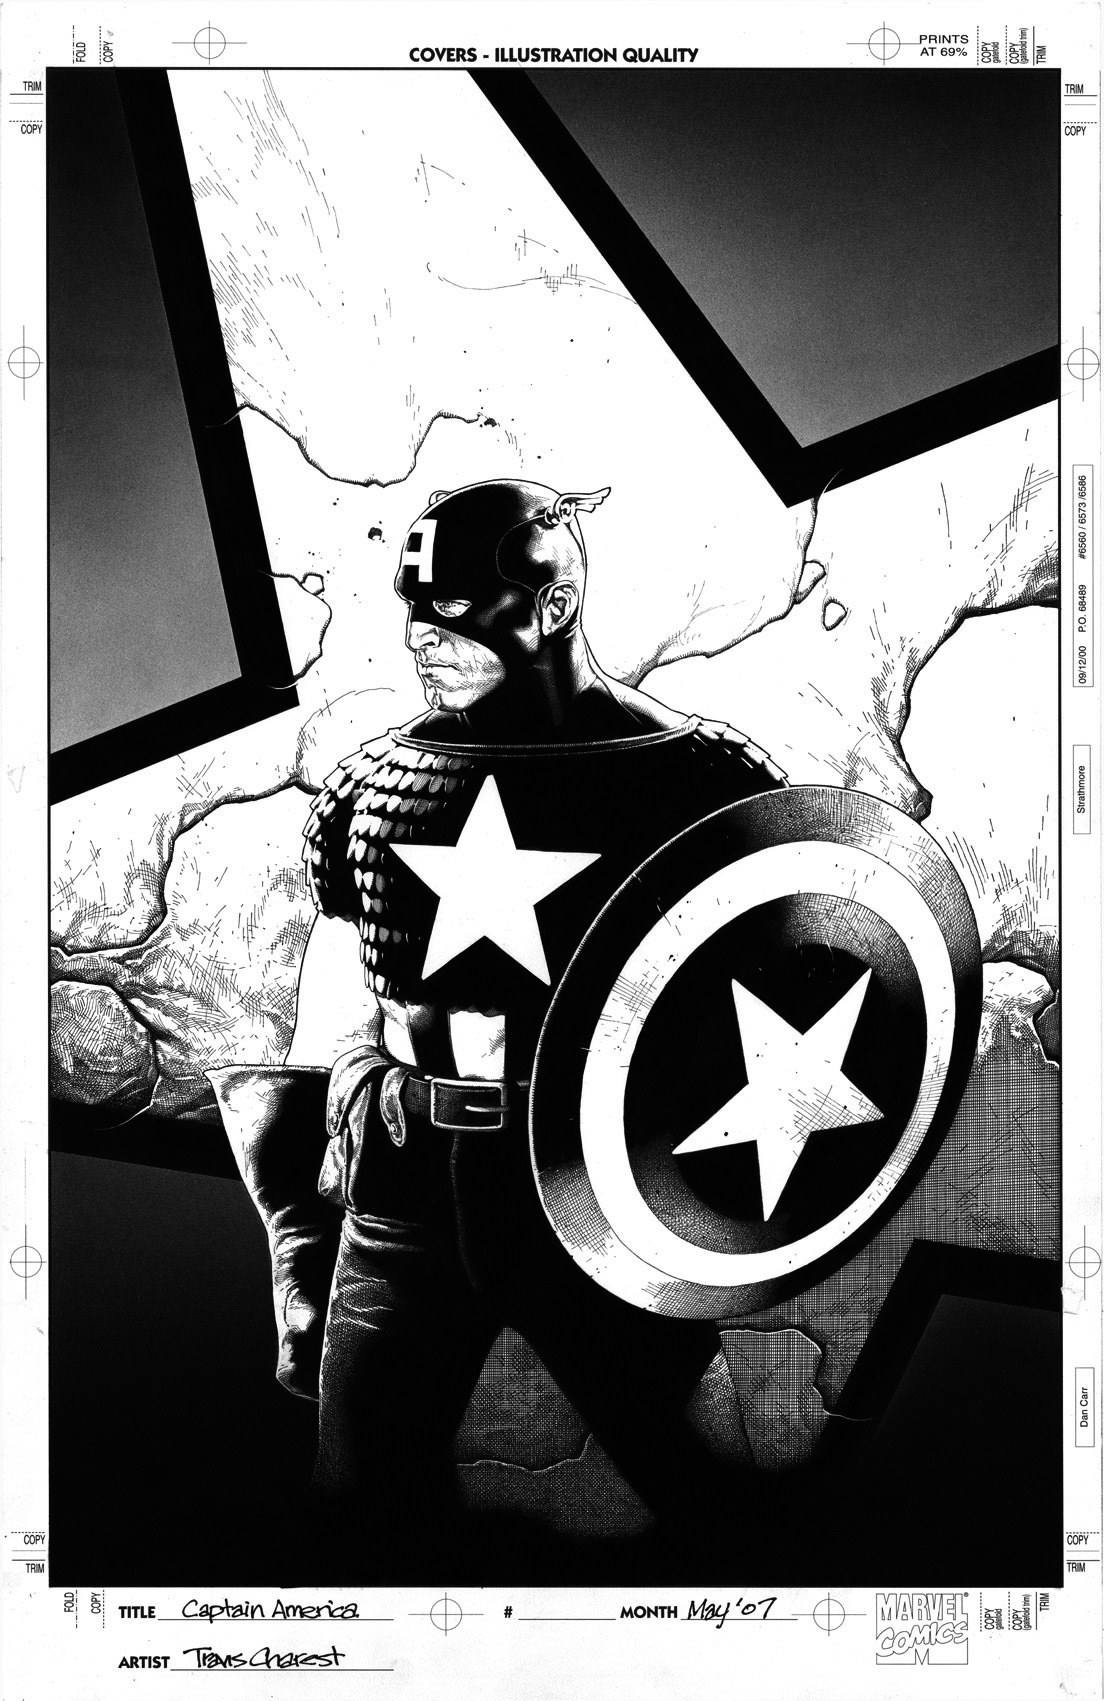 Very Large version of Captain America  The Chosen cover by Travis Charest